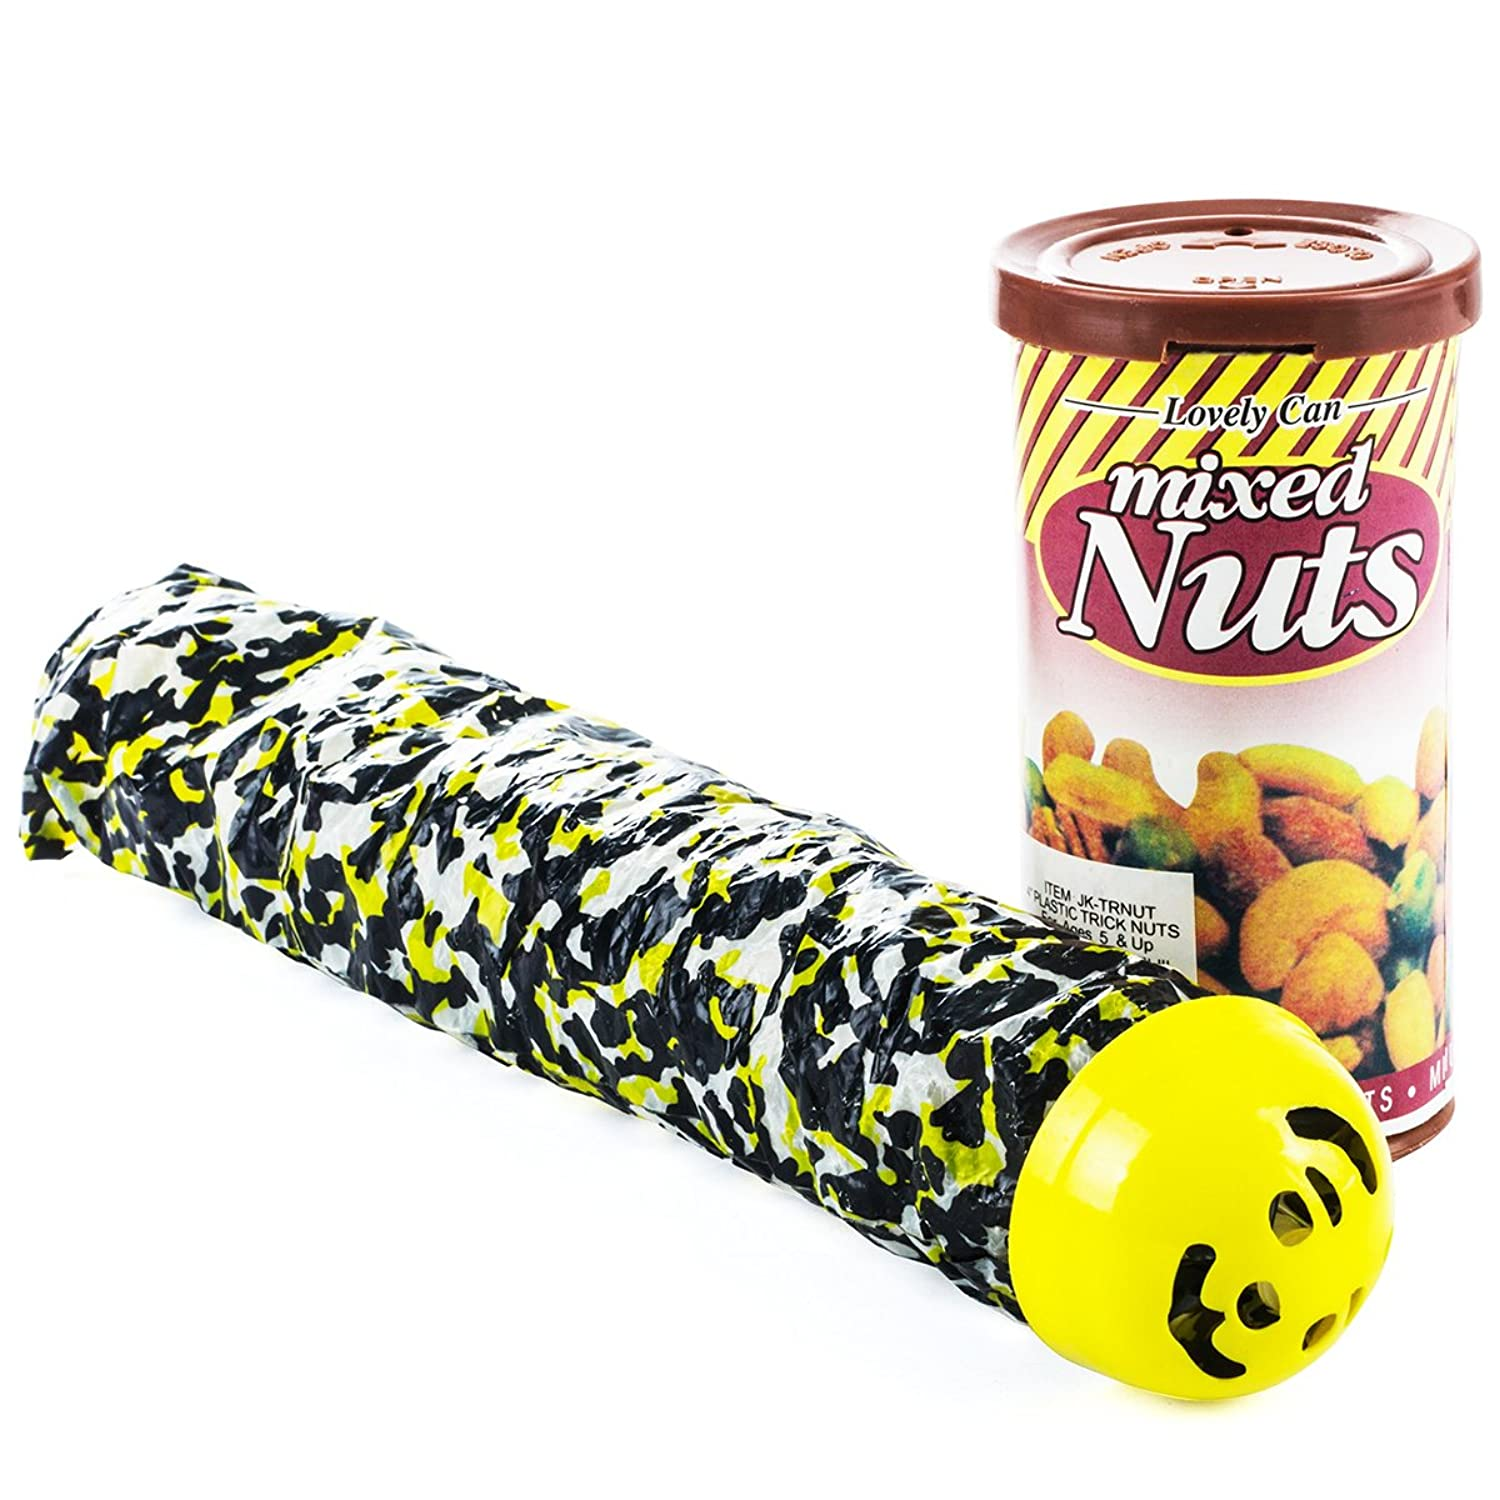 Amazon.com: Prank Stuff - Pranks and Gags - Snake in a Can of Nuts ...